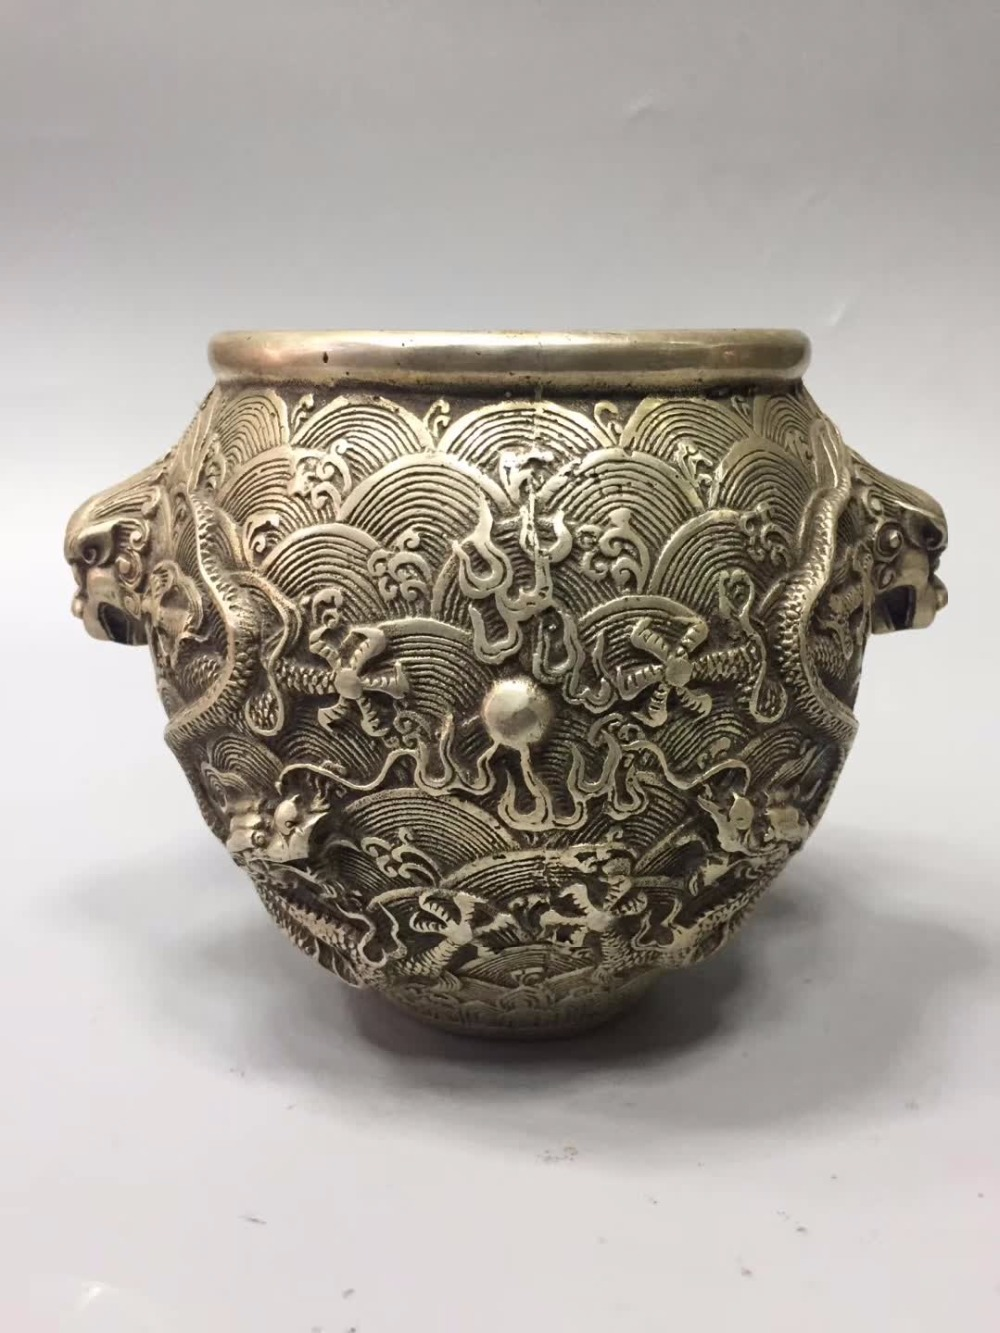 Art Collection Tibet Silver Old Handmade Pot /chinese Antique Pot High Quality And Low Overhead Home Decor Home/desk Decoration Dragon Pot Metal Crafts